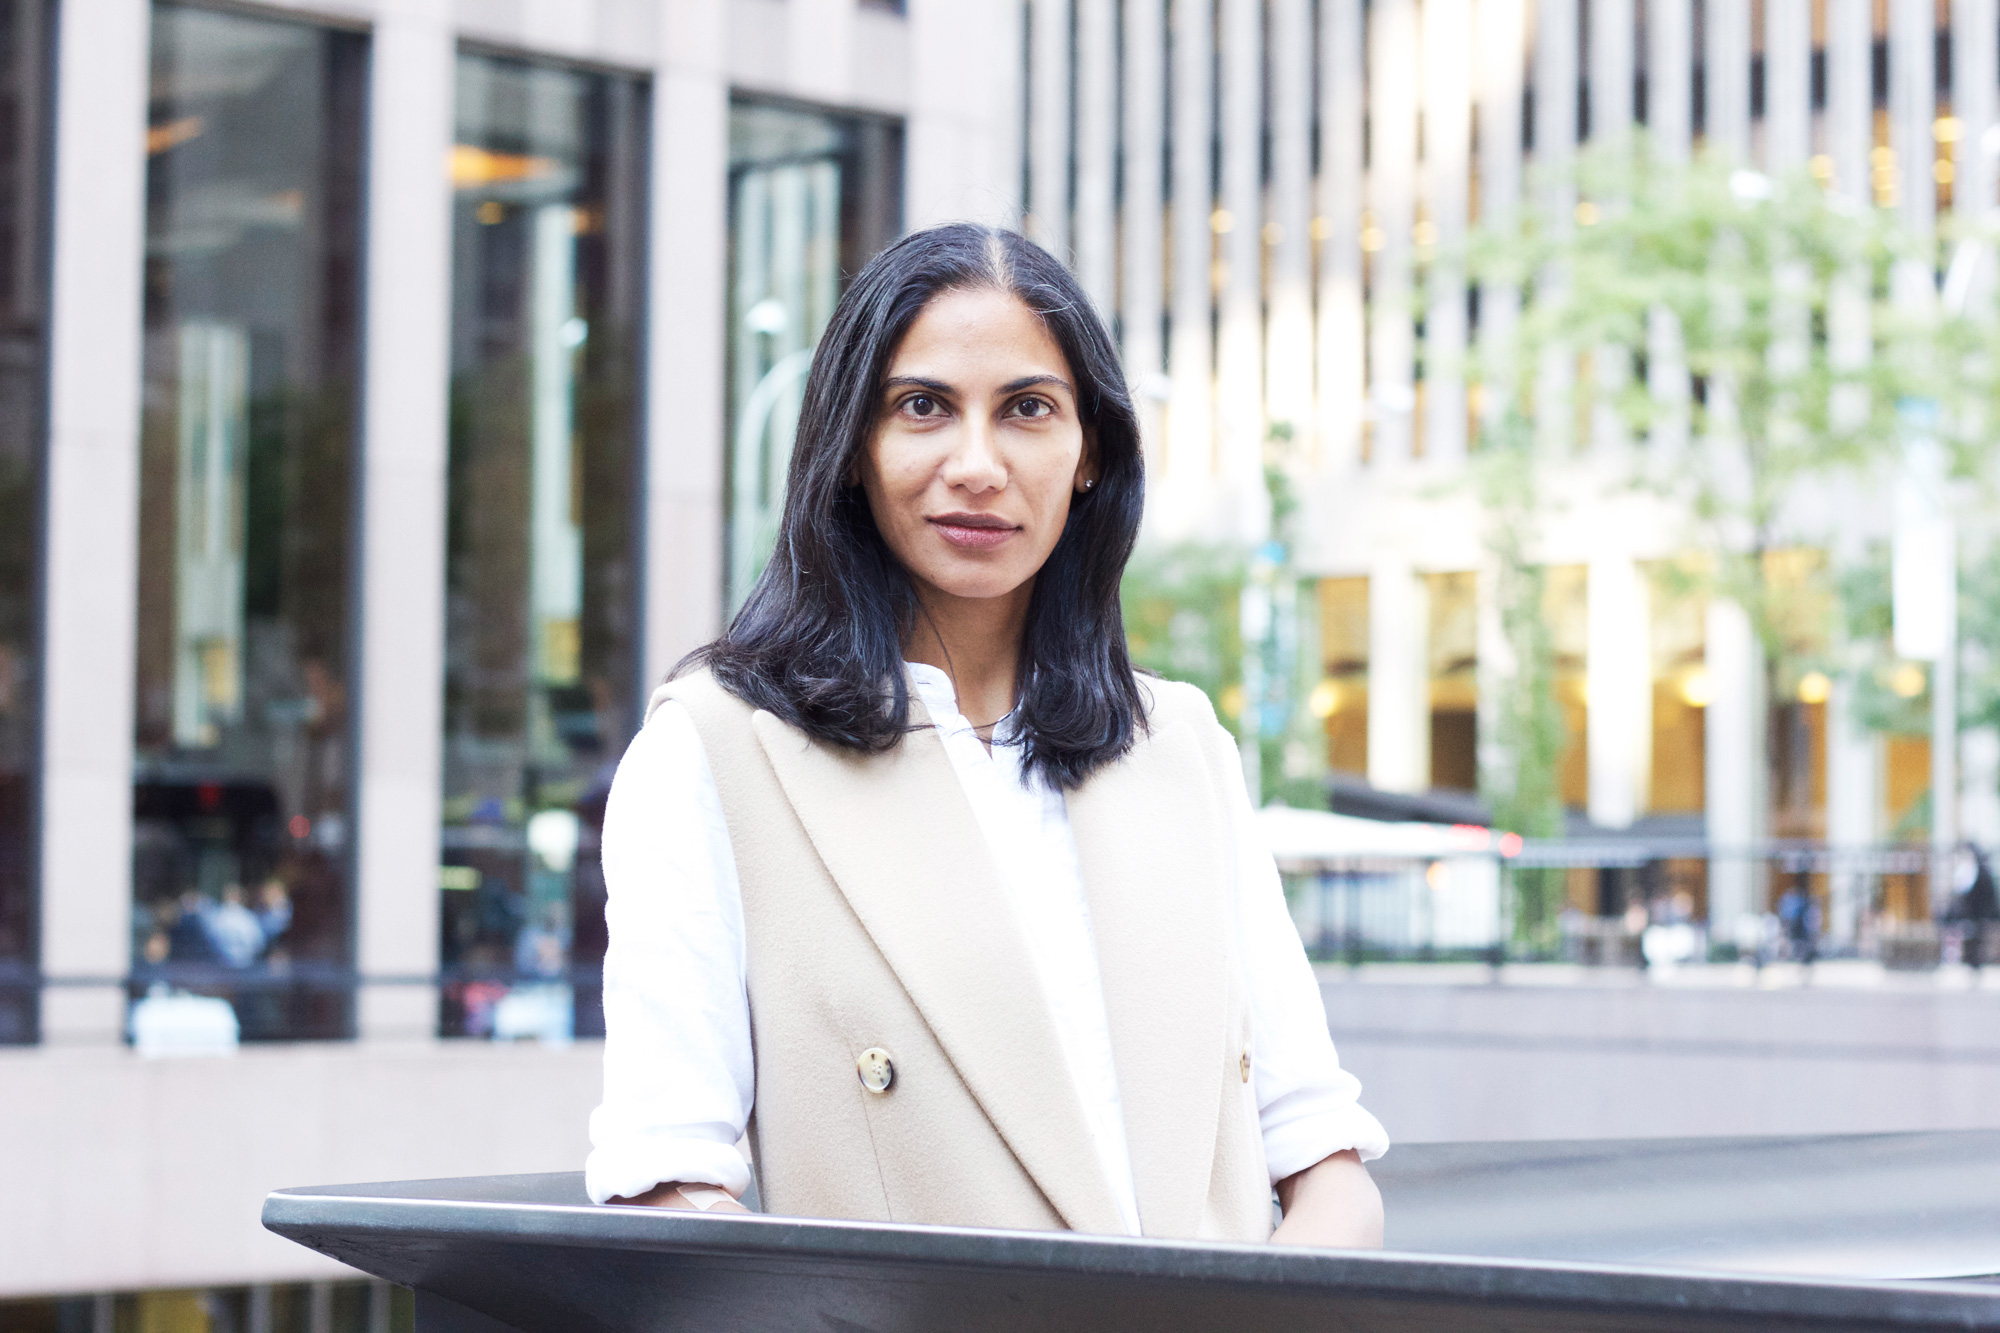 Career talk with the Wall Street Journal's Meenal Mistry